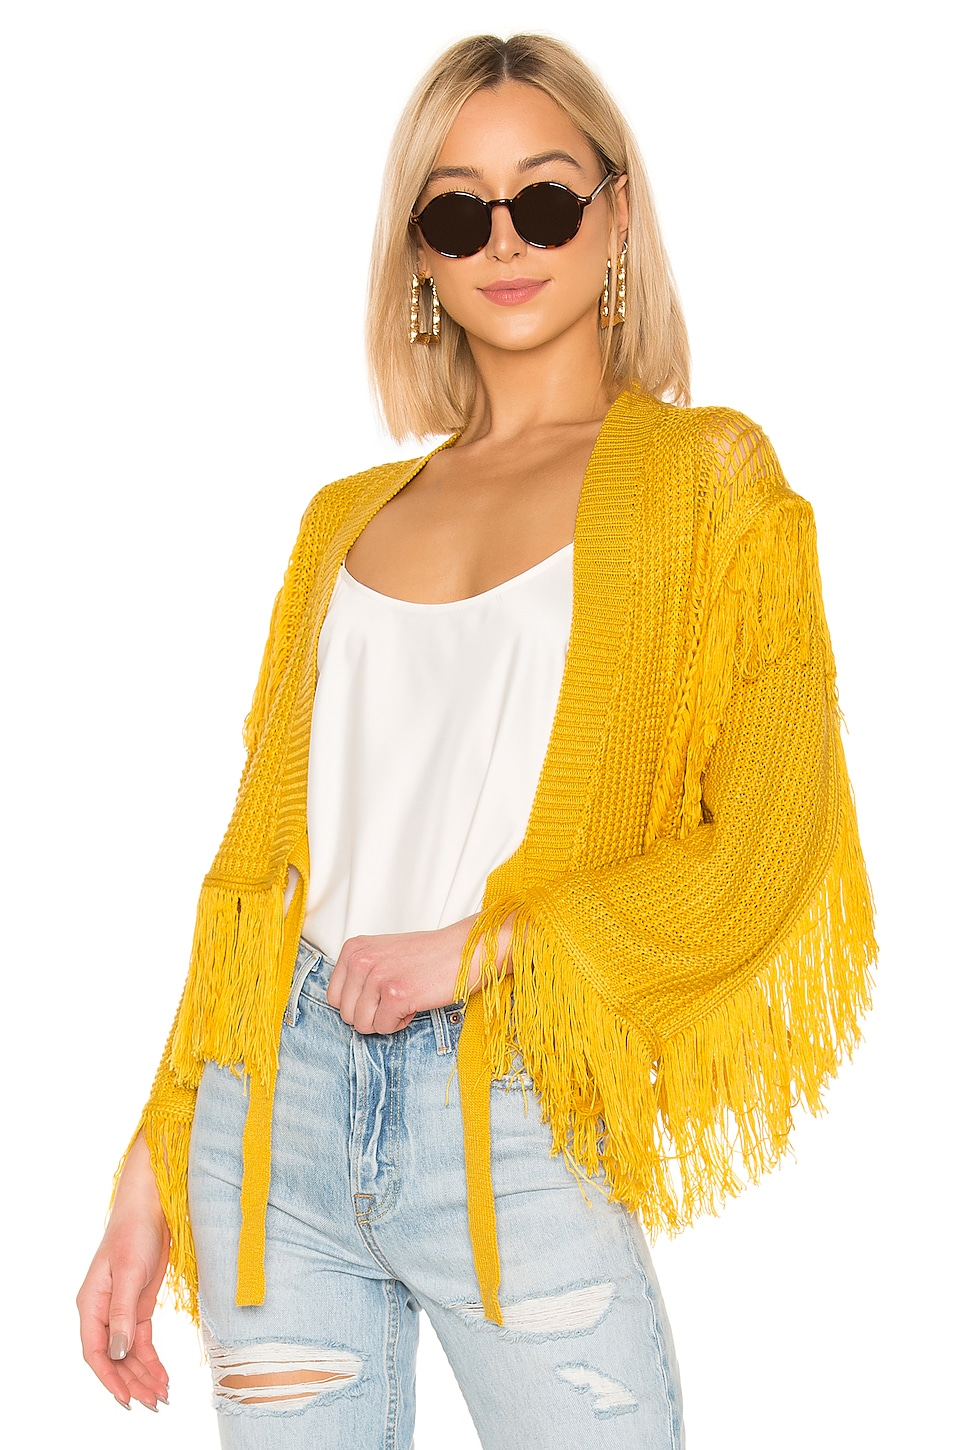 Tularosa Selena Jacket in Yellow